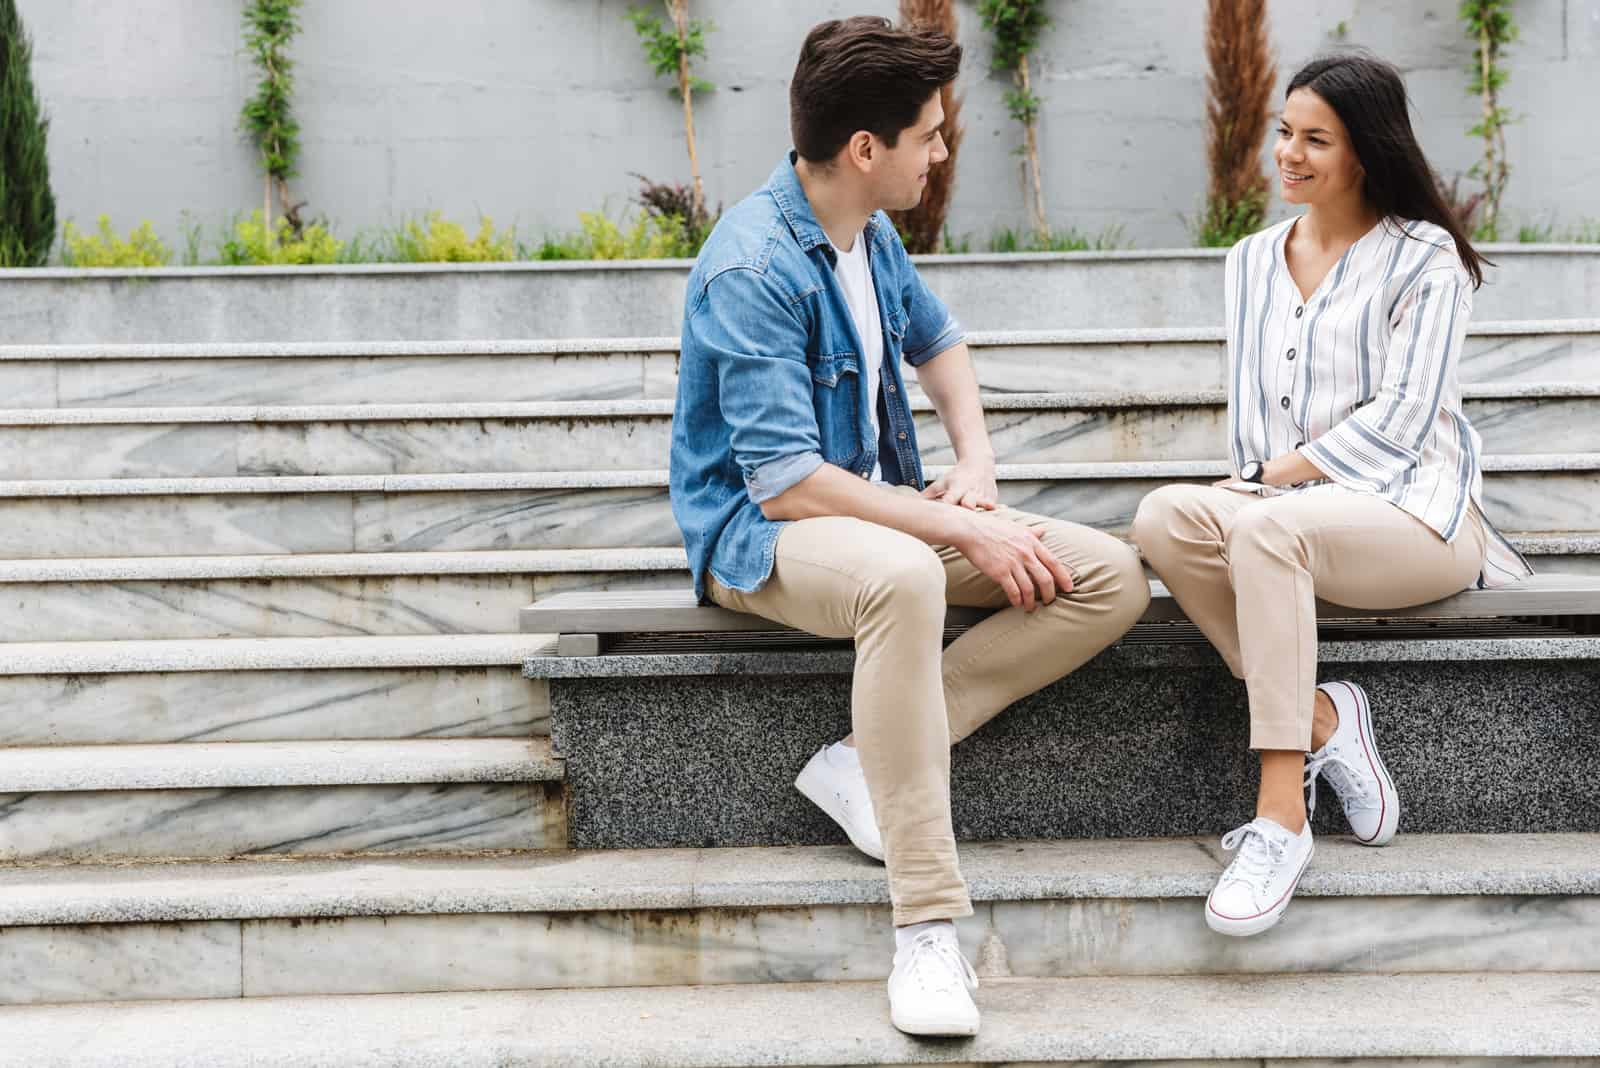 a smiling man and woman sit on a bench and look at each other